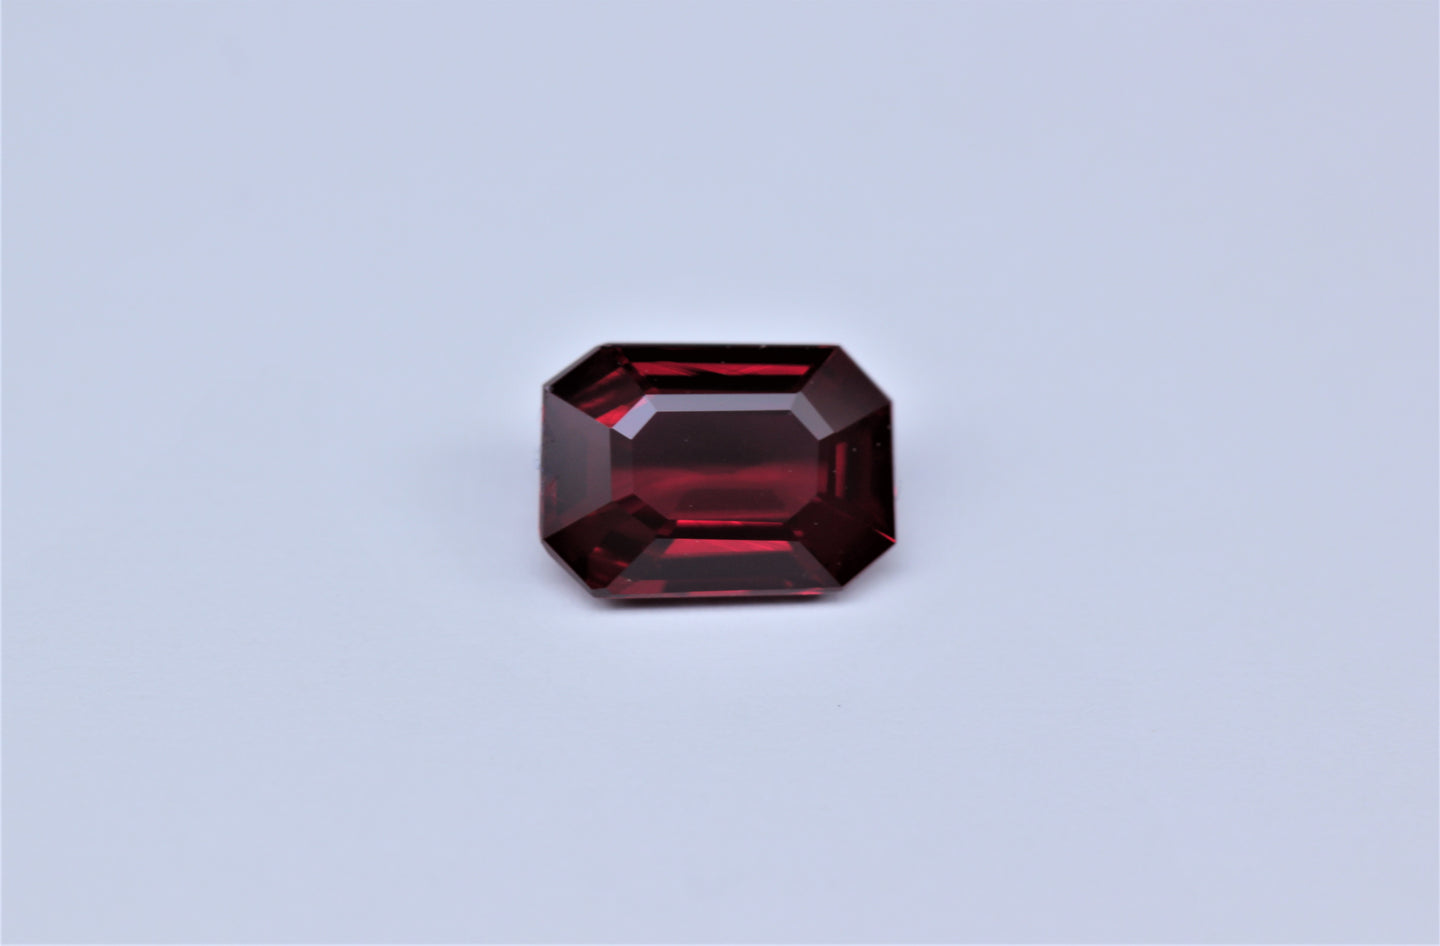 [SOLD] 6.94x4.98mm Octagonal Ruby Certificated (RUE75AAX)